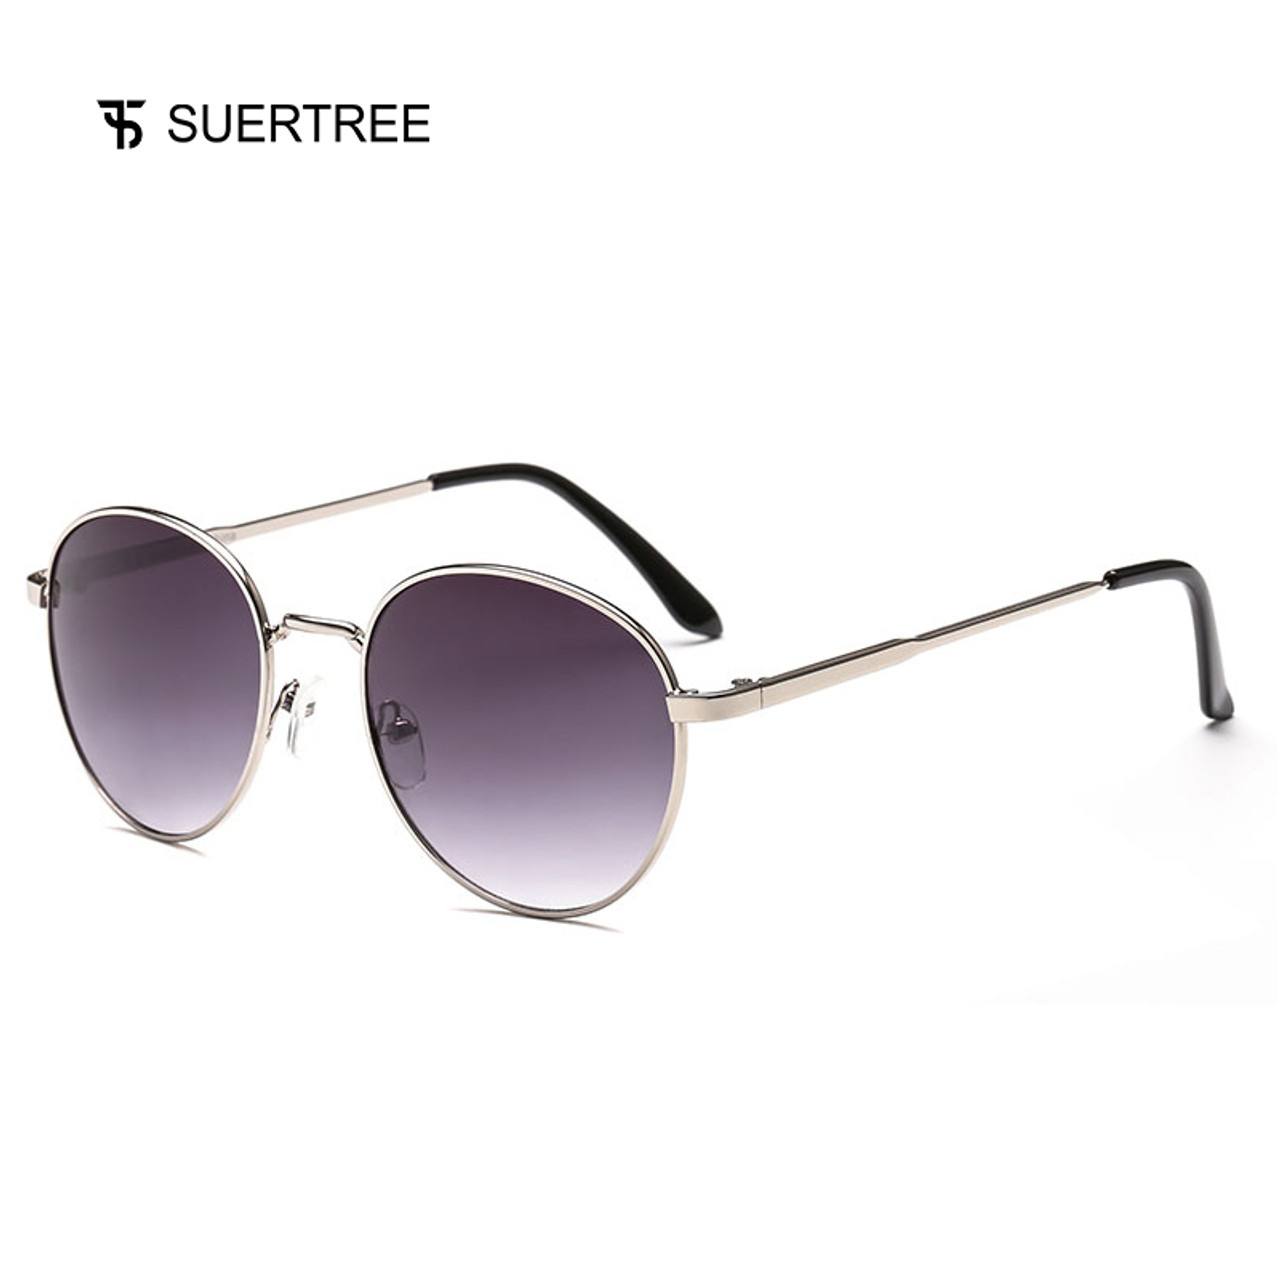 2018 New Round Metal Sunglasses Vintage Unisex Luxury Sun Glasses Retro Shades Wholesale Clearance Brand Designer High Quality Onshopdeals Com